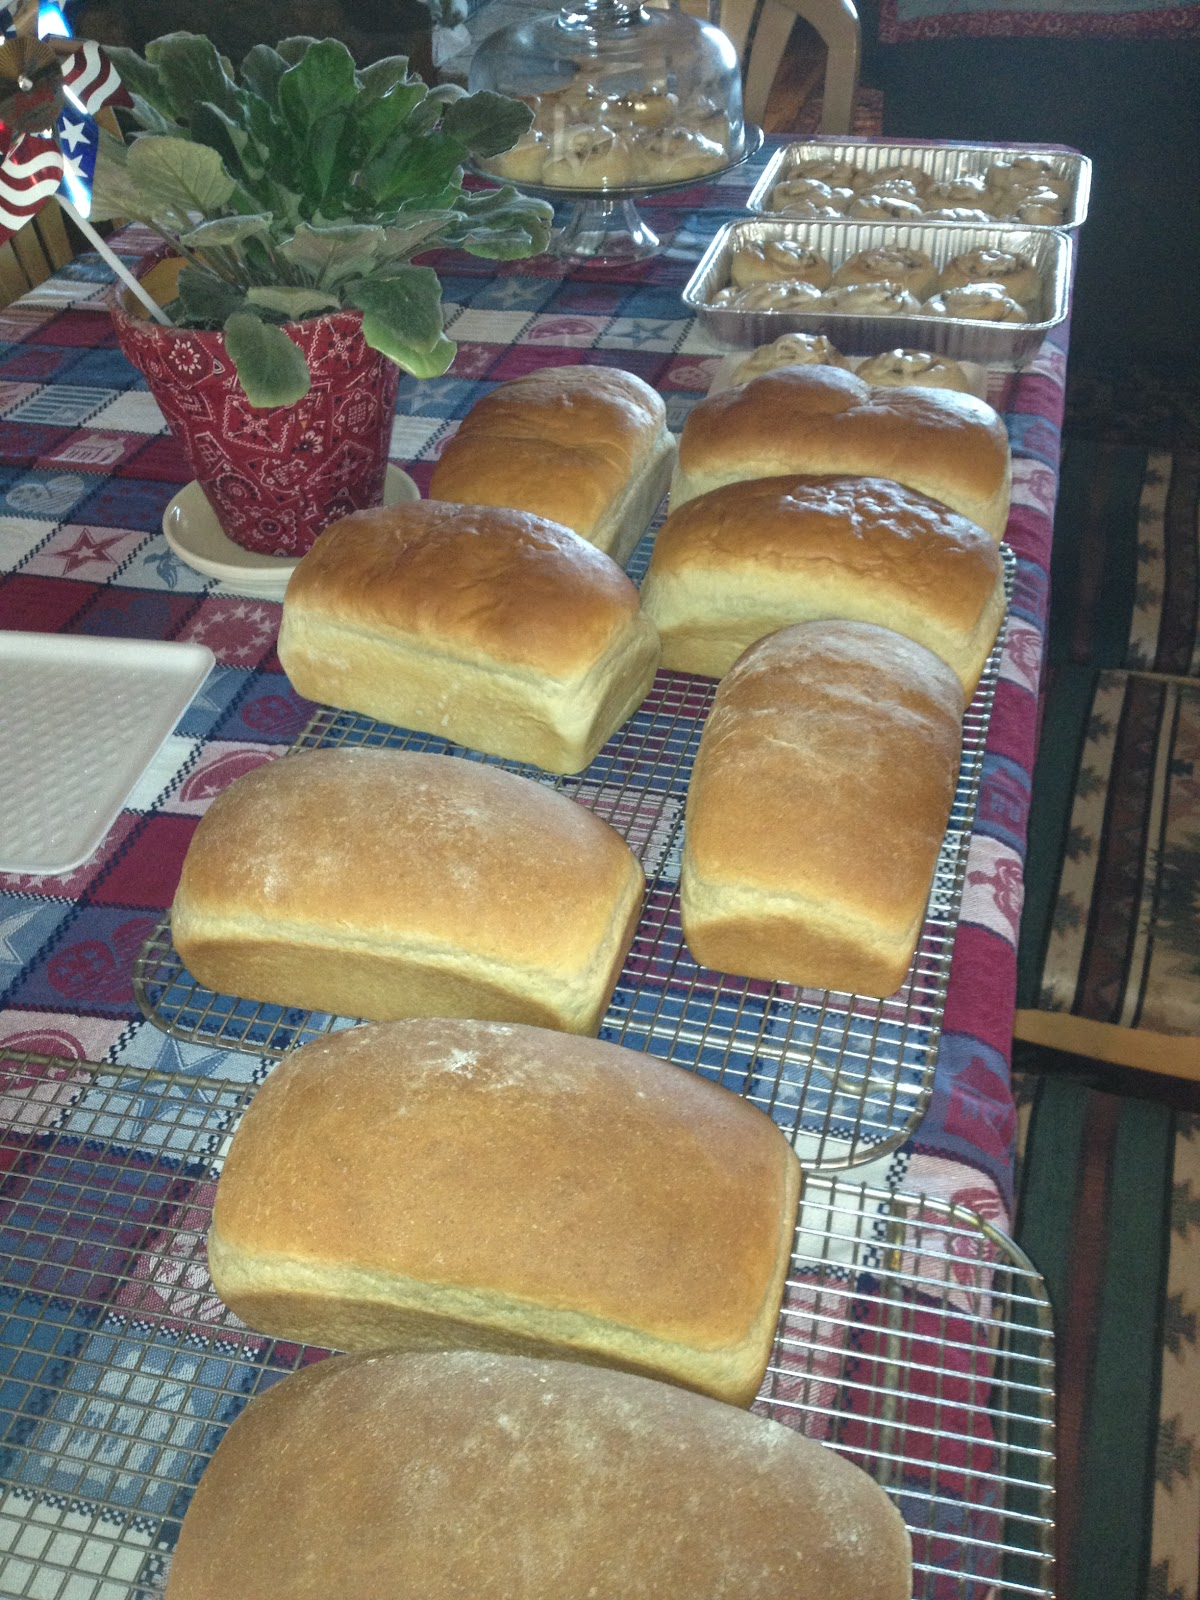 whole wheat bread at the bottom white bread in the